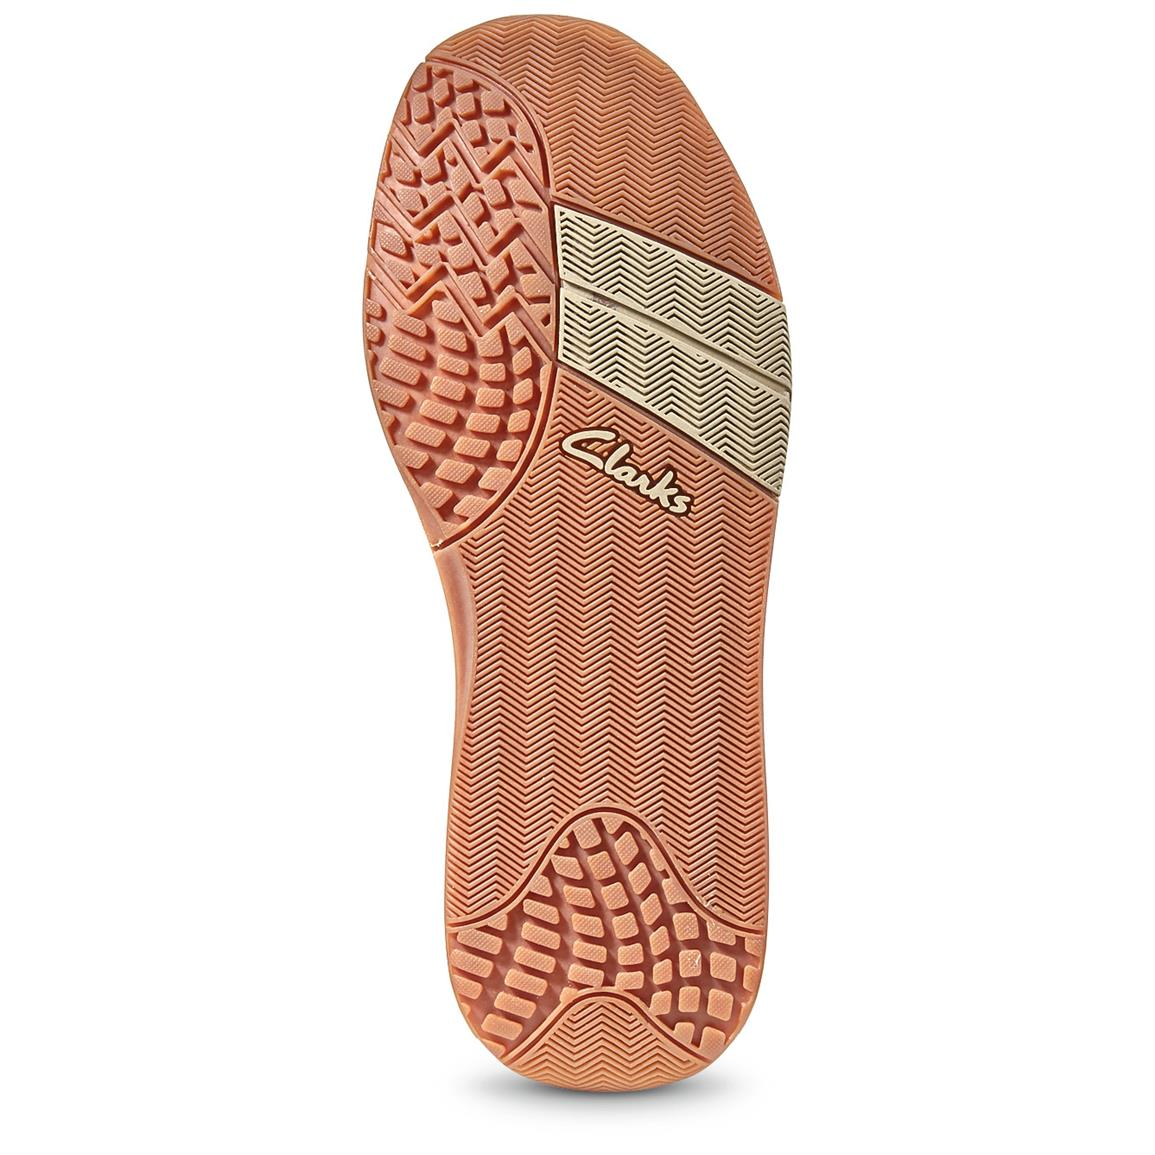 Durable rubber outsole keeps you steady with ground-gripping traction